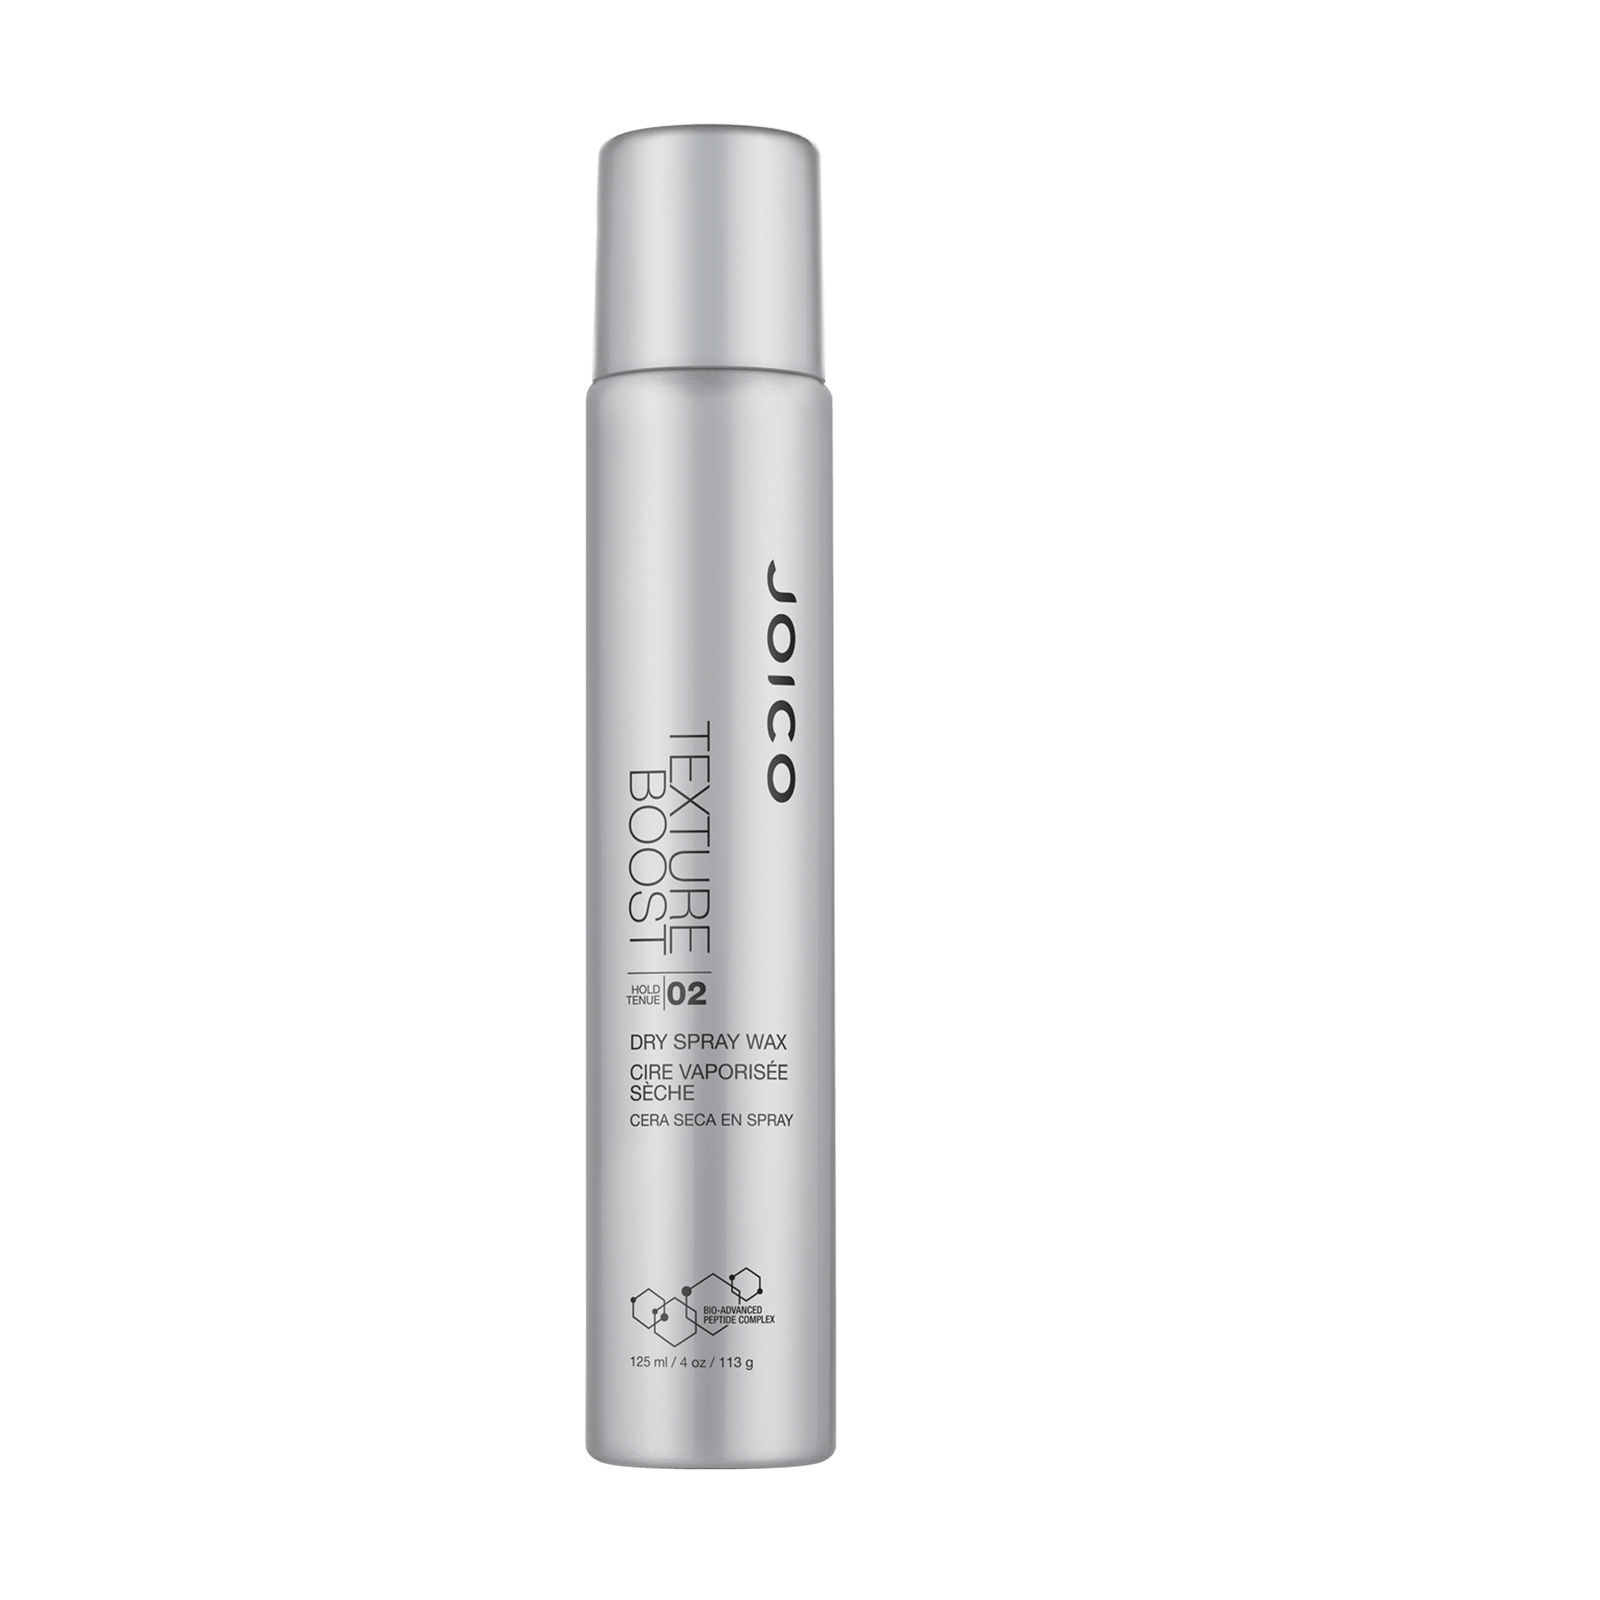 JOICO TEXTURE BOOST HOLD TENUE  02 DRY SPRAY WAX 125 ML.